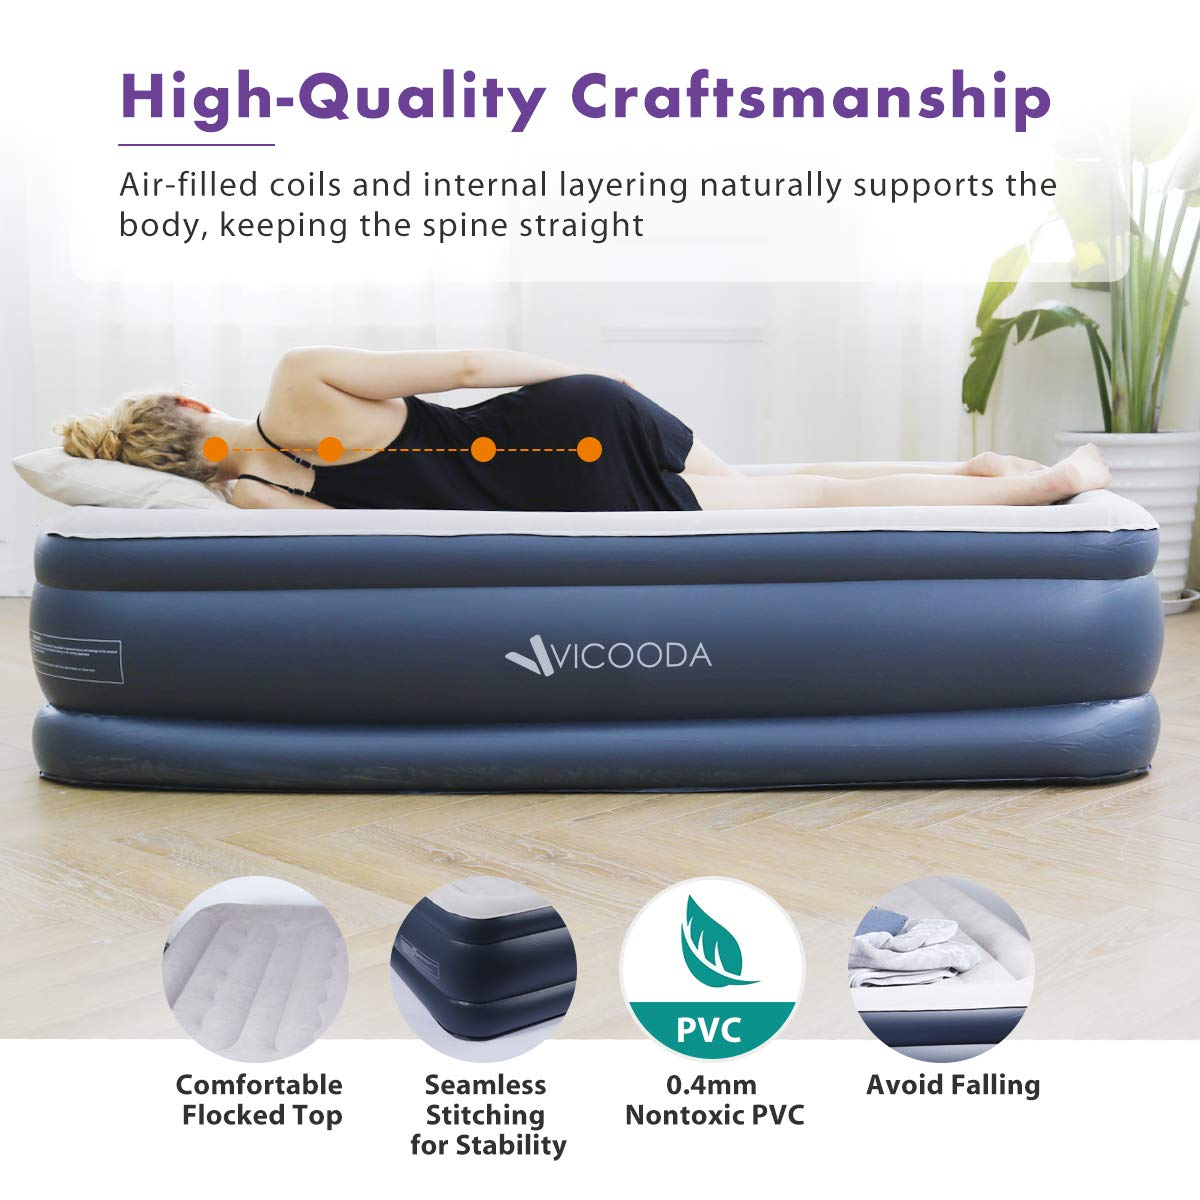 462a6cce701 VICOODA Air Mattress Twin Size Blow Up Raised Guest Durable Firm Bed  Inflatable Airbed with Built larger image